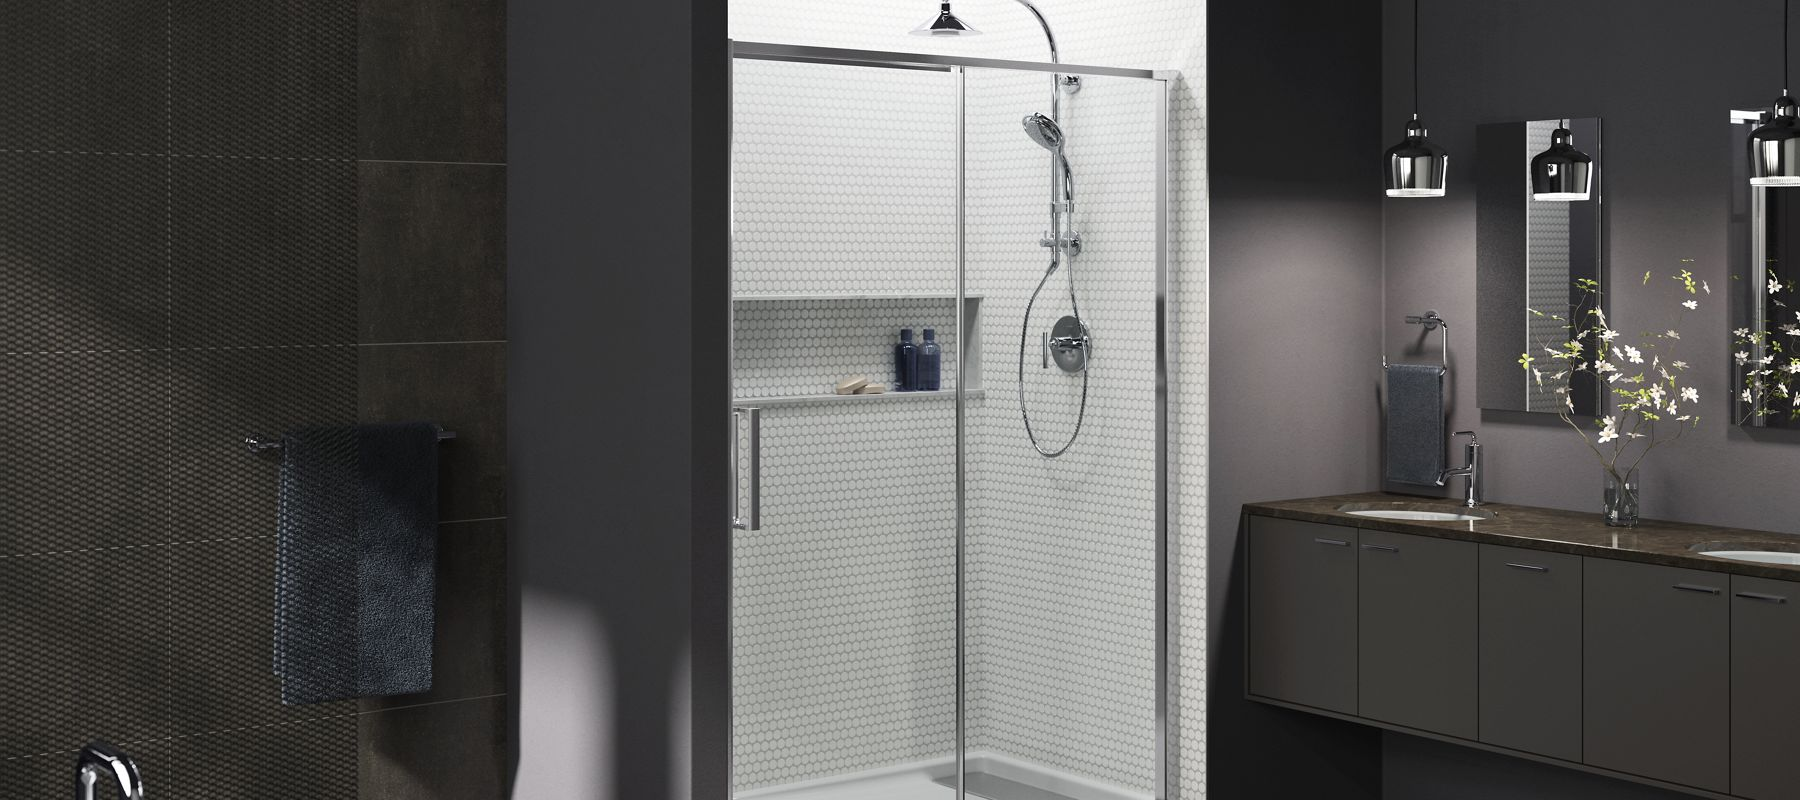 Bathroom Doors Nigeria shower doors | showering |bathroom | kohler